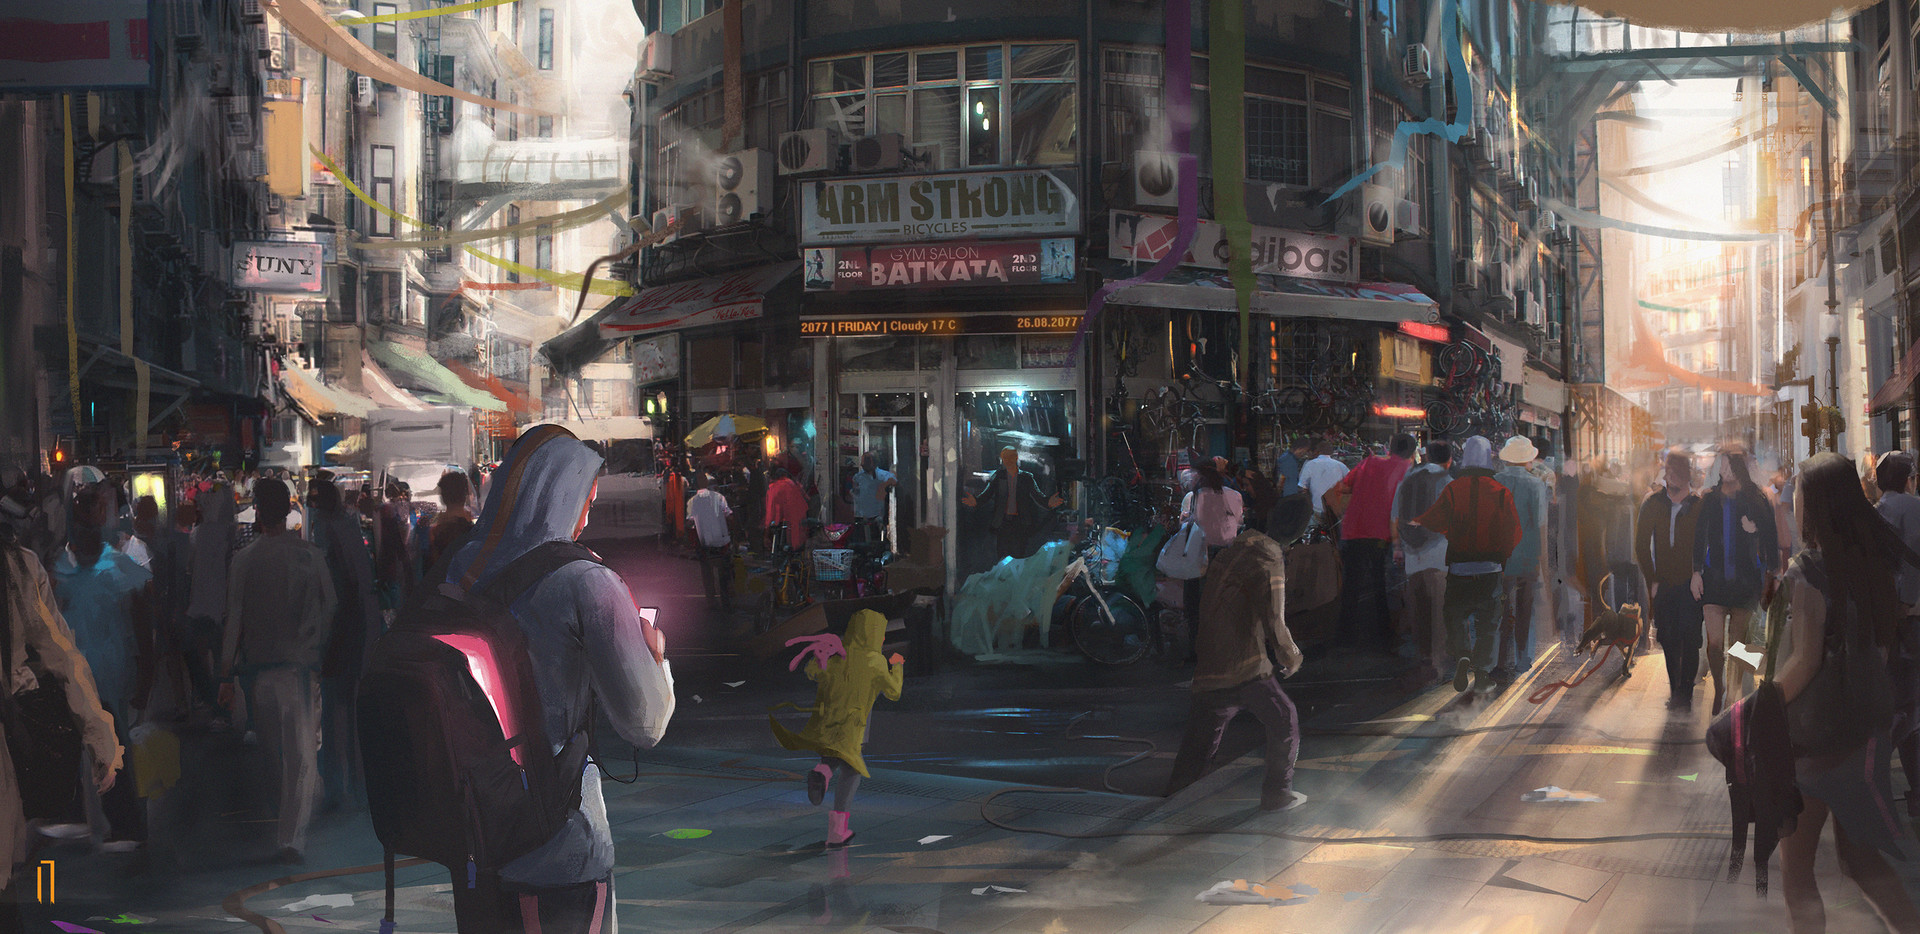 Ismail inceoglu busy afternoons